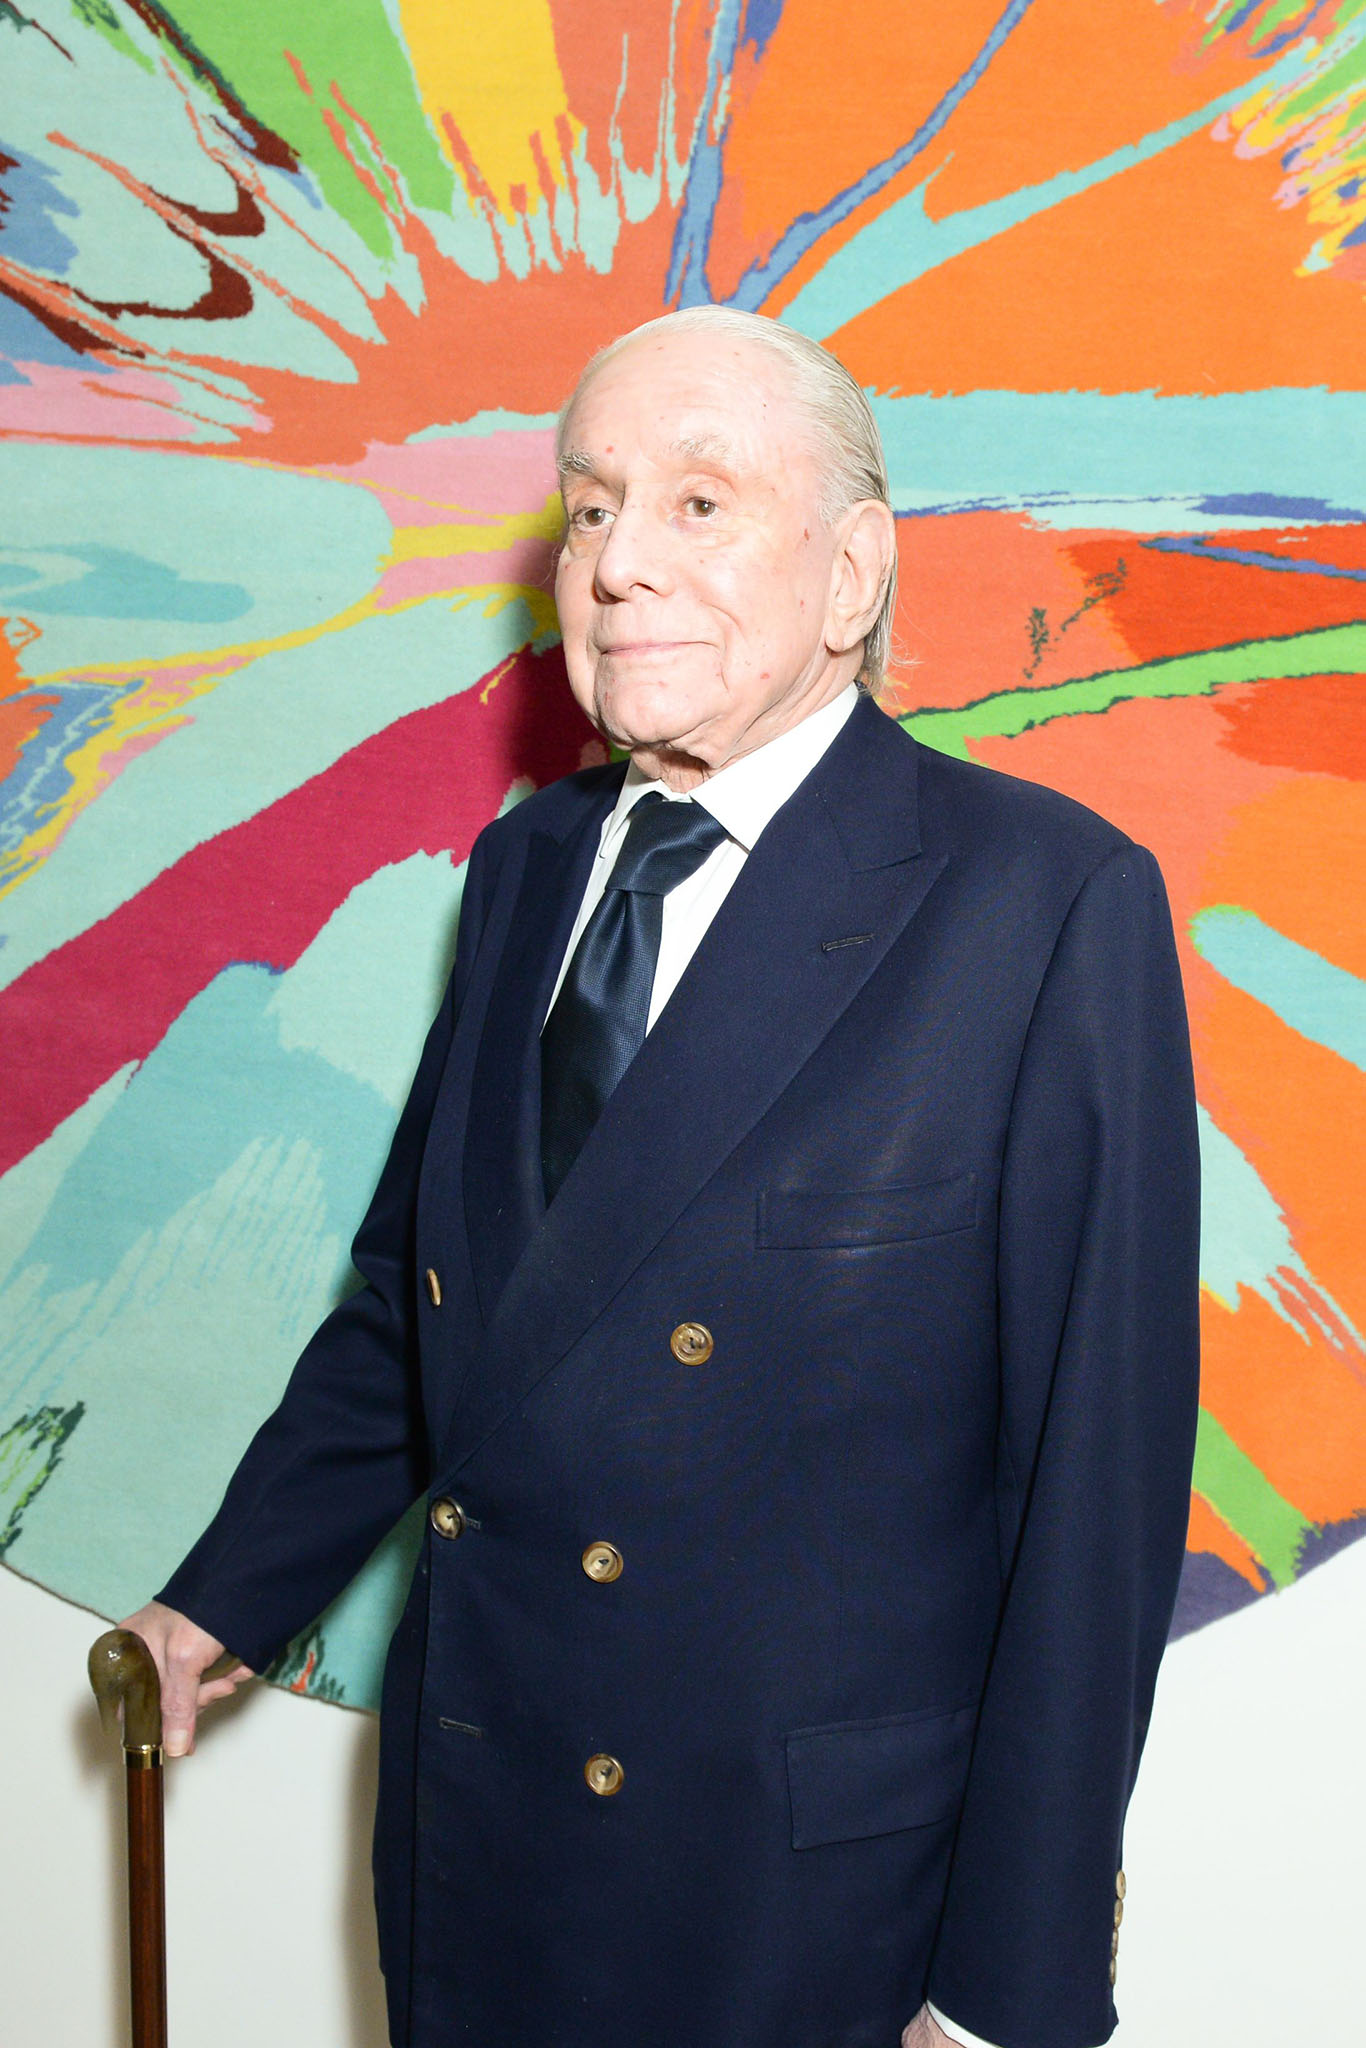 Kenneth Jay Lane'Tory Burch: In Color' Book Launch, New York, America - 06 Oct 2014